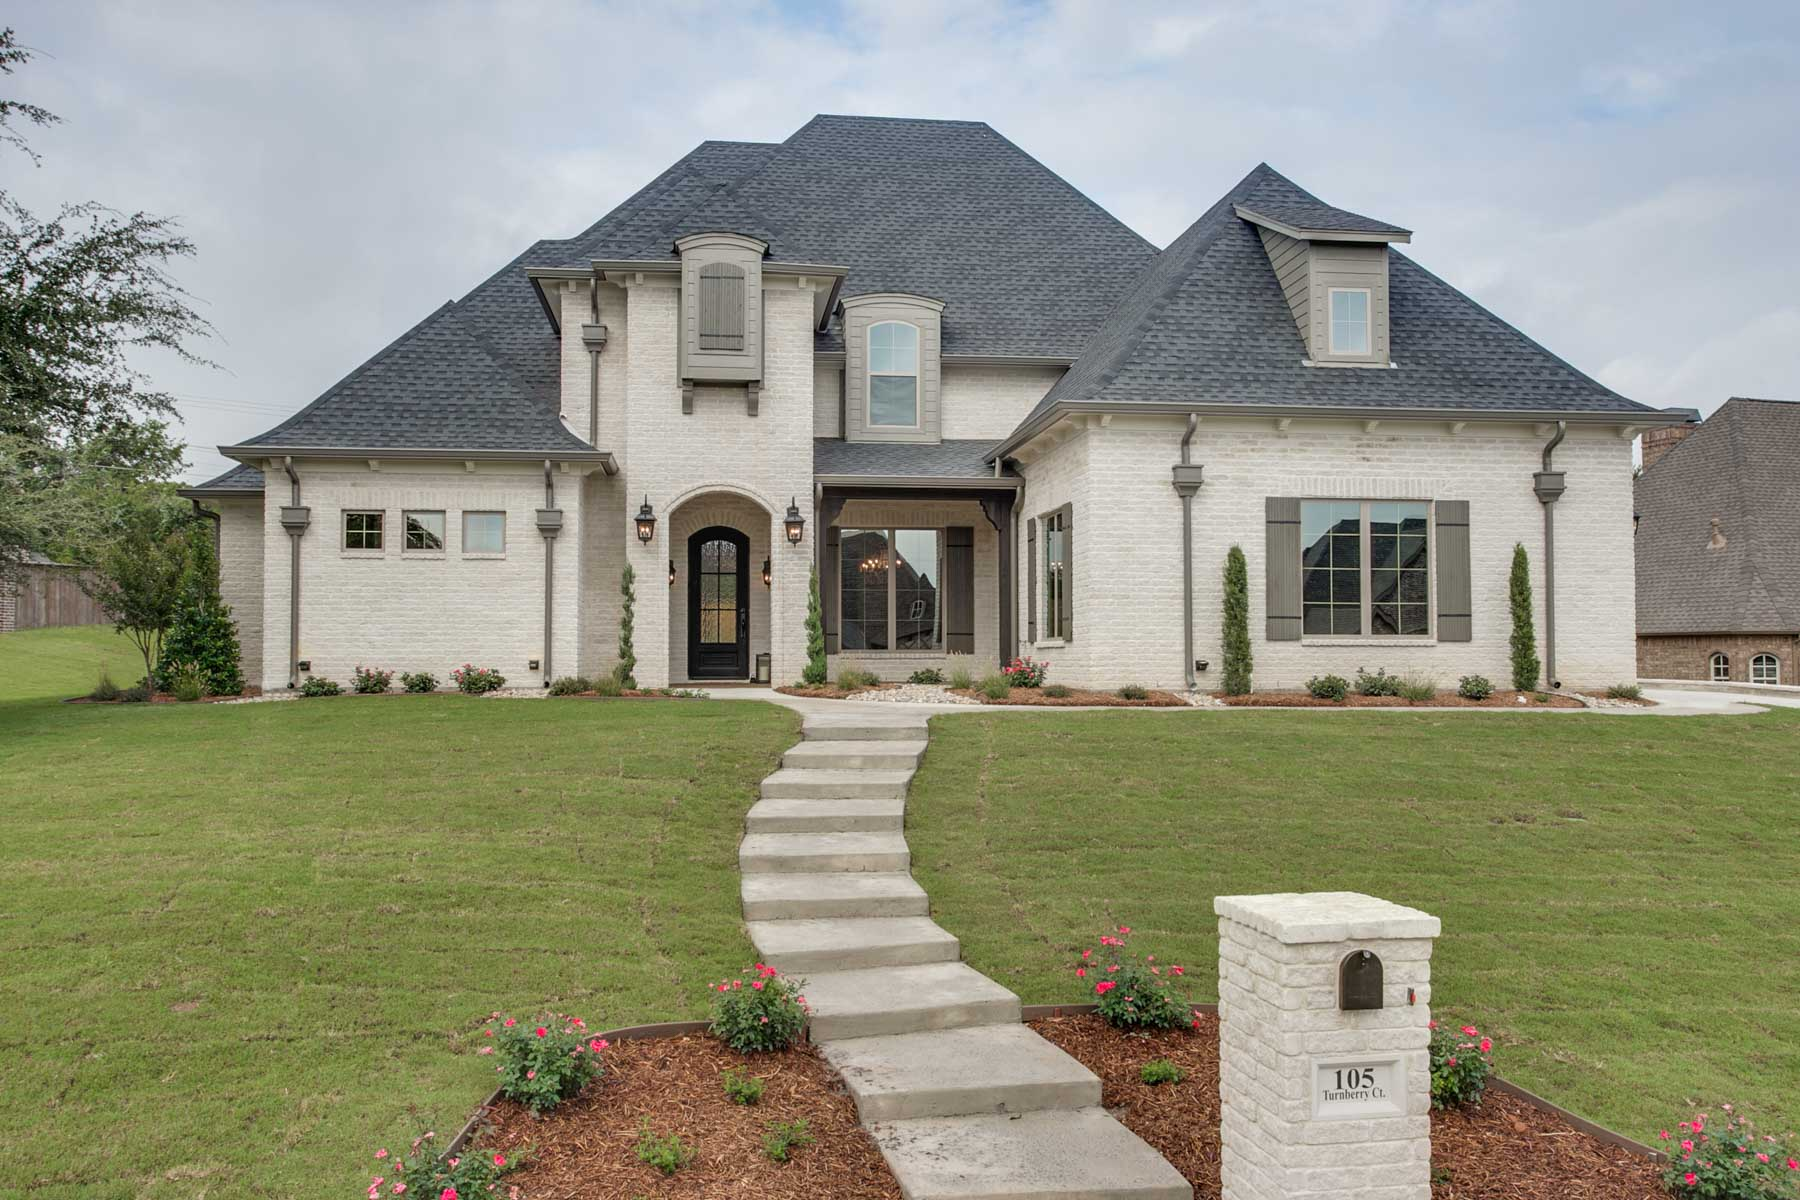 Casa Unifamiliar por un Venta en Luxury Living in Aledo ISD 105 Turnberry Ct Aledo, Texas, 76008 Estados Unidos